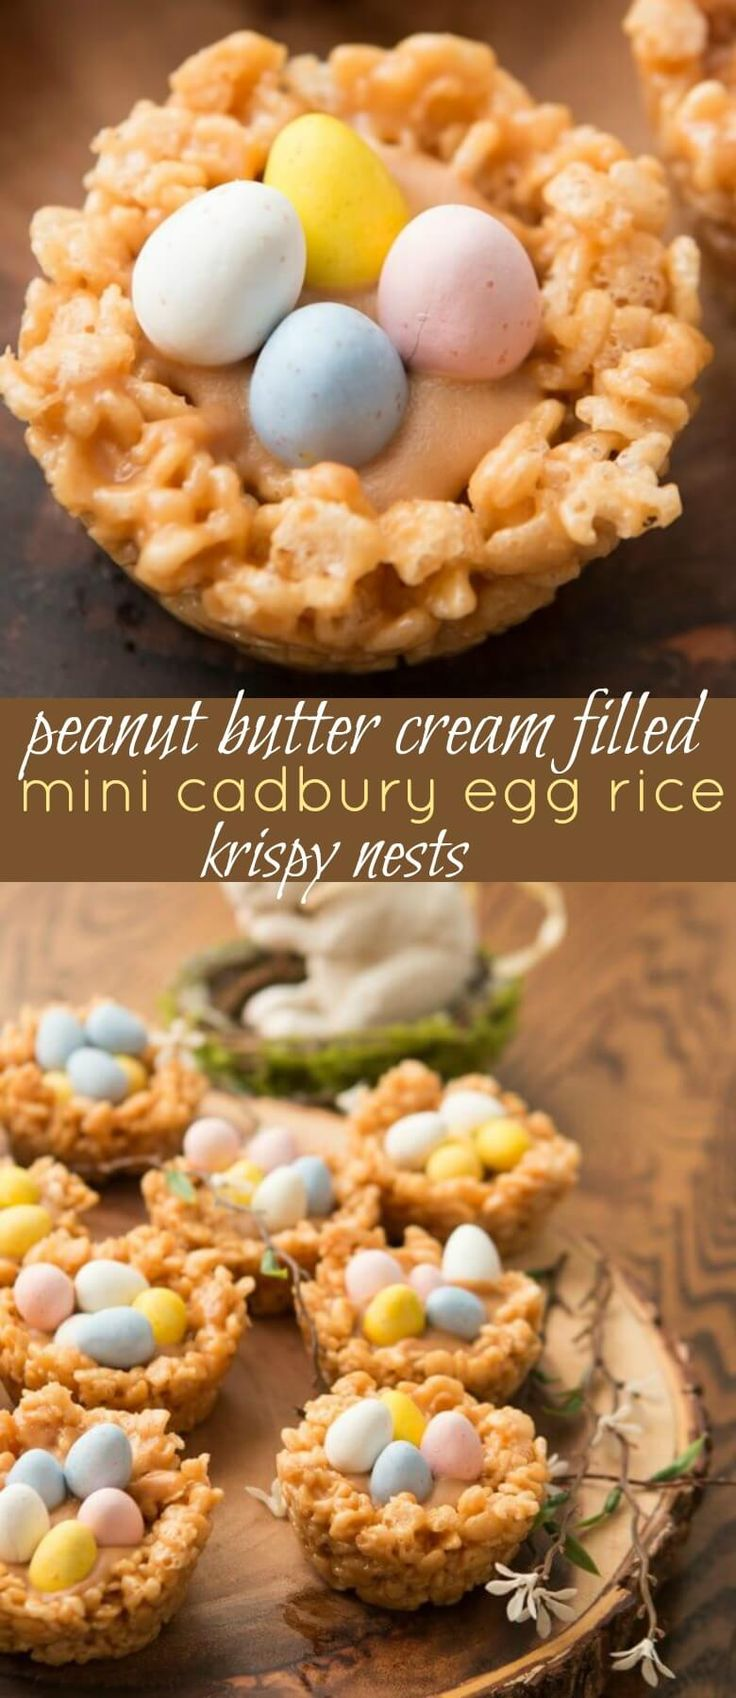 Peanut butter rice krispy nests are not only fun to make for the little ones but they're so tasty too!